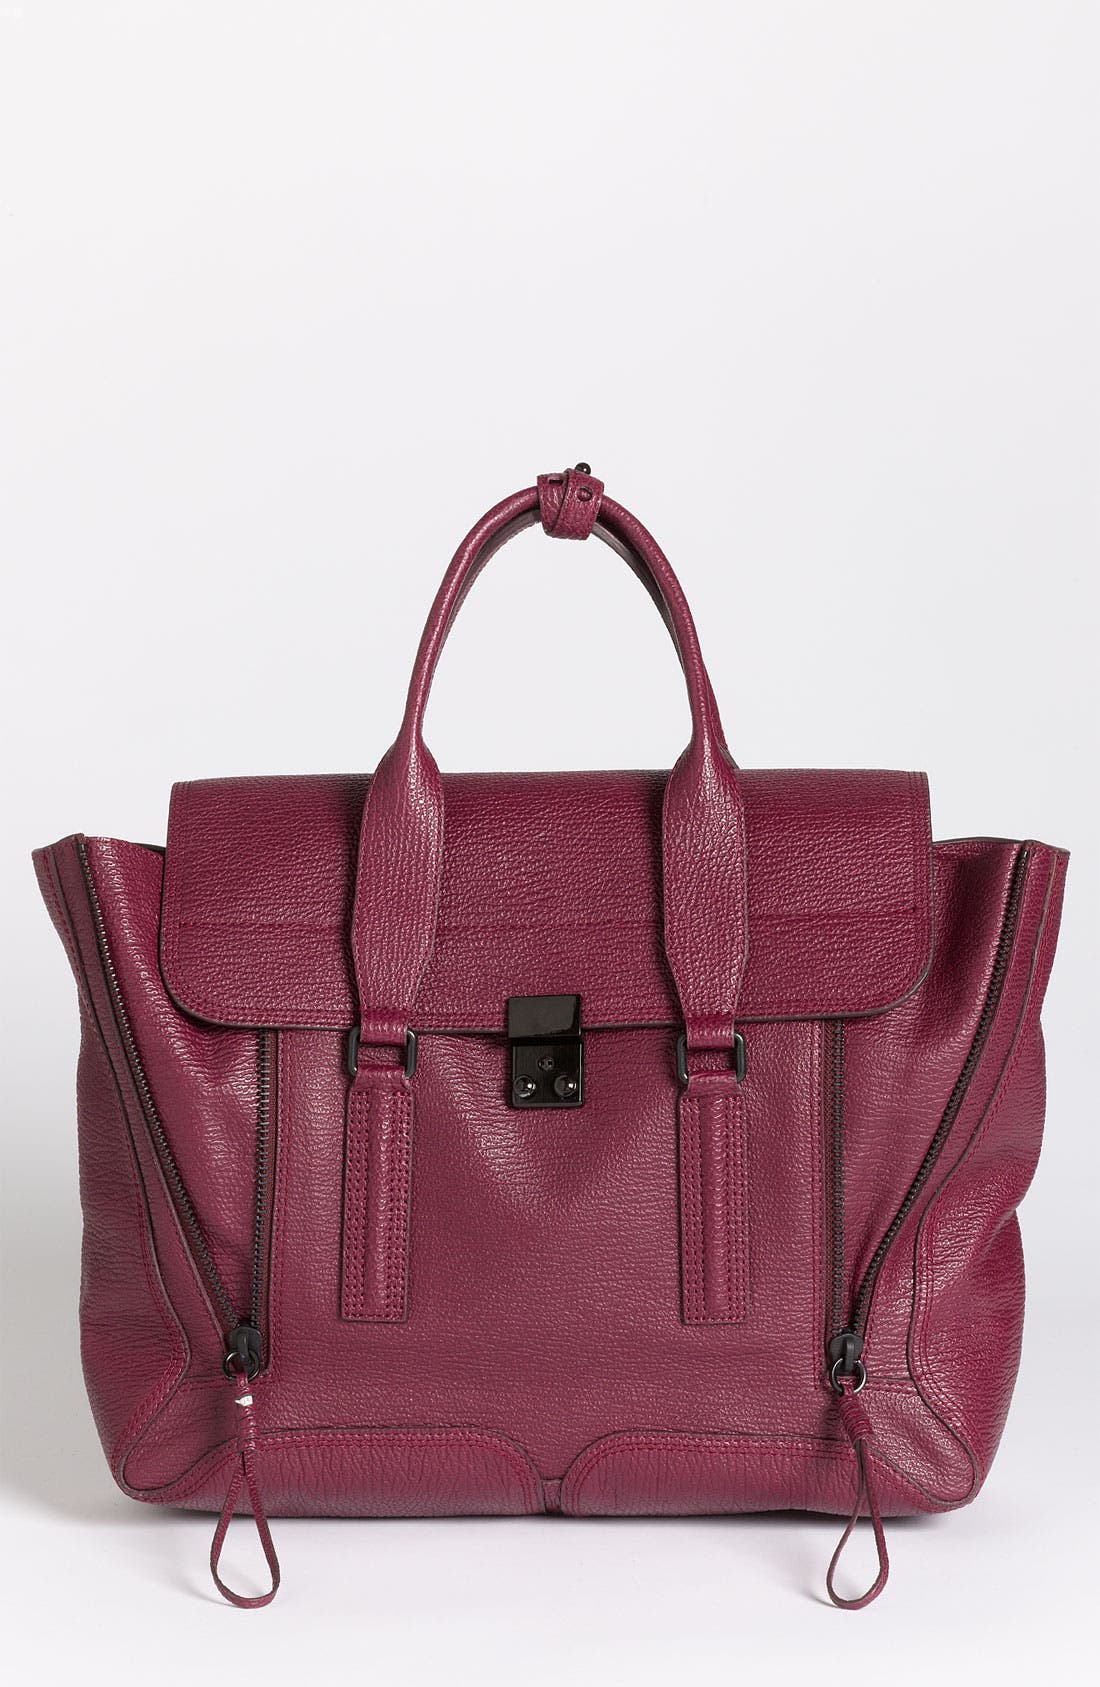 Main Image - 3.1 Phillip Lim 'Pashli' Leather Satchel